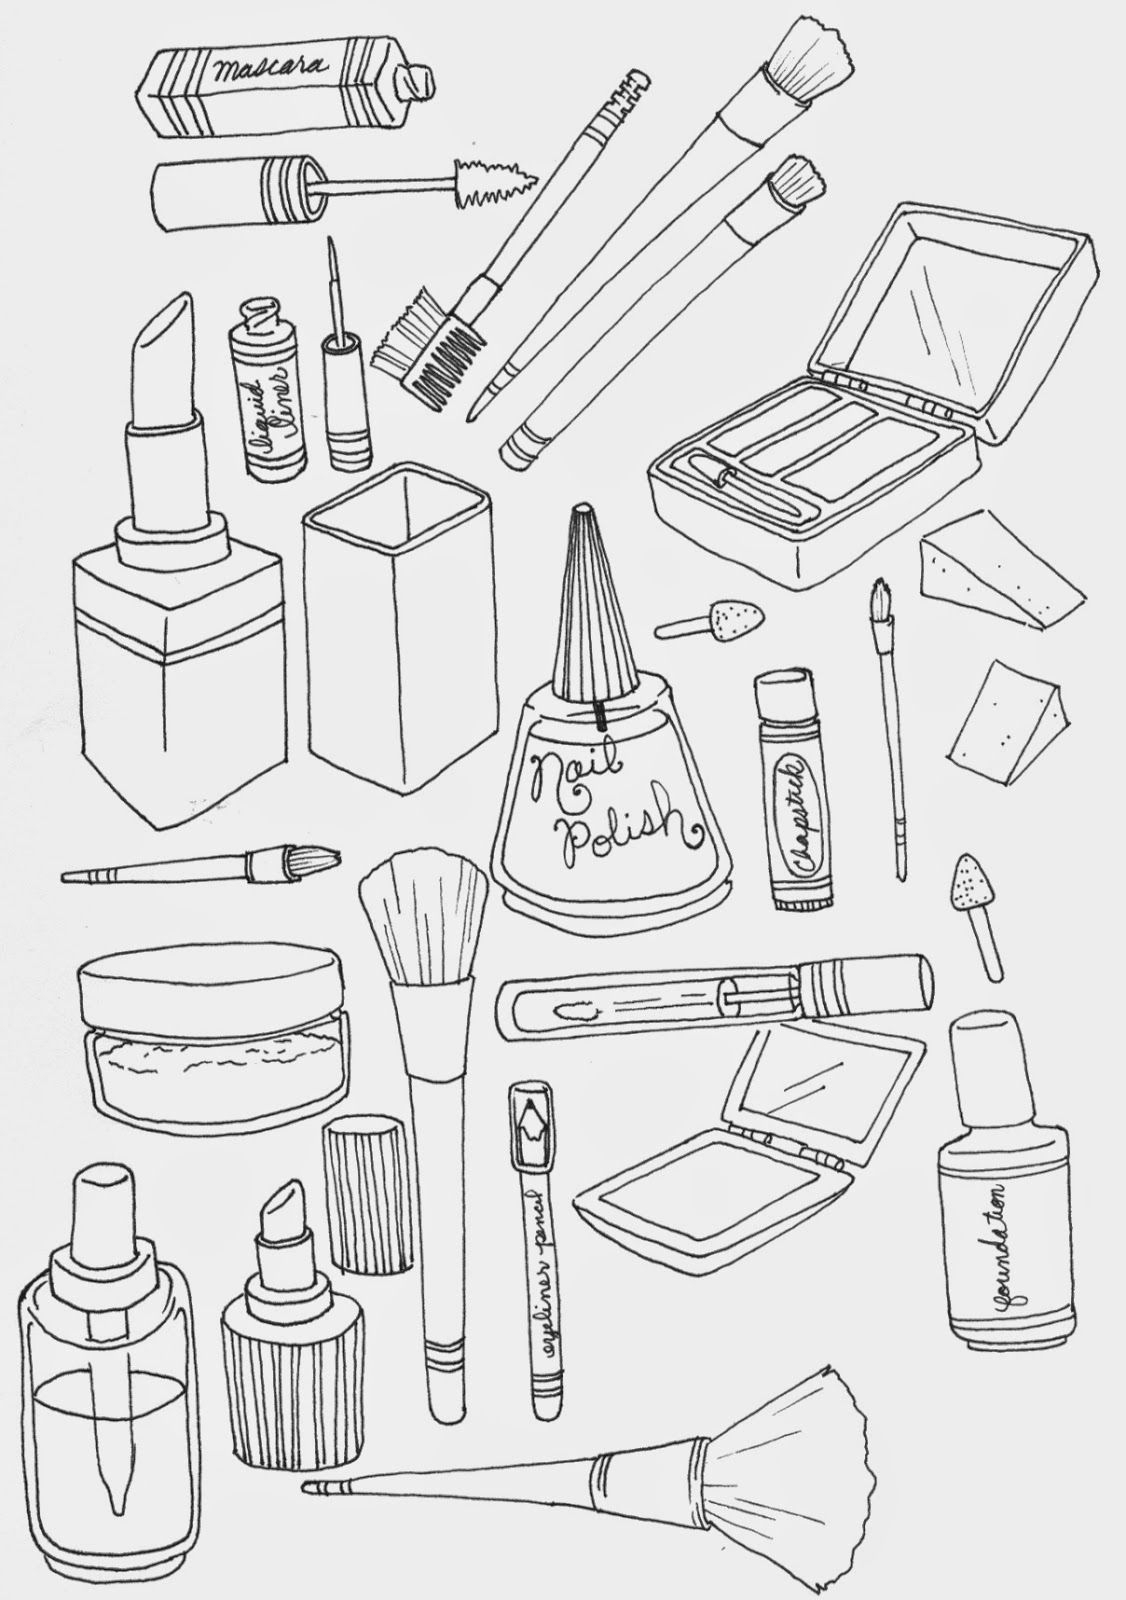 turn pictures into coloring pages for free Download-makeup colouring sheets Google Search 16-j